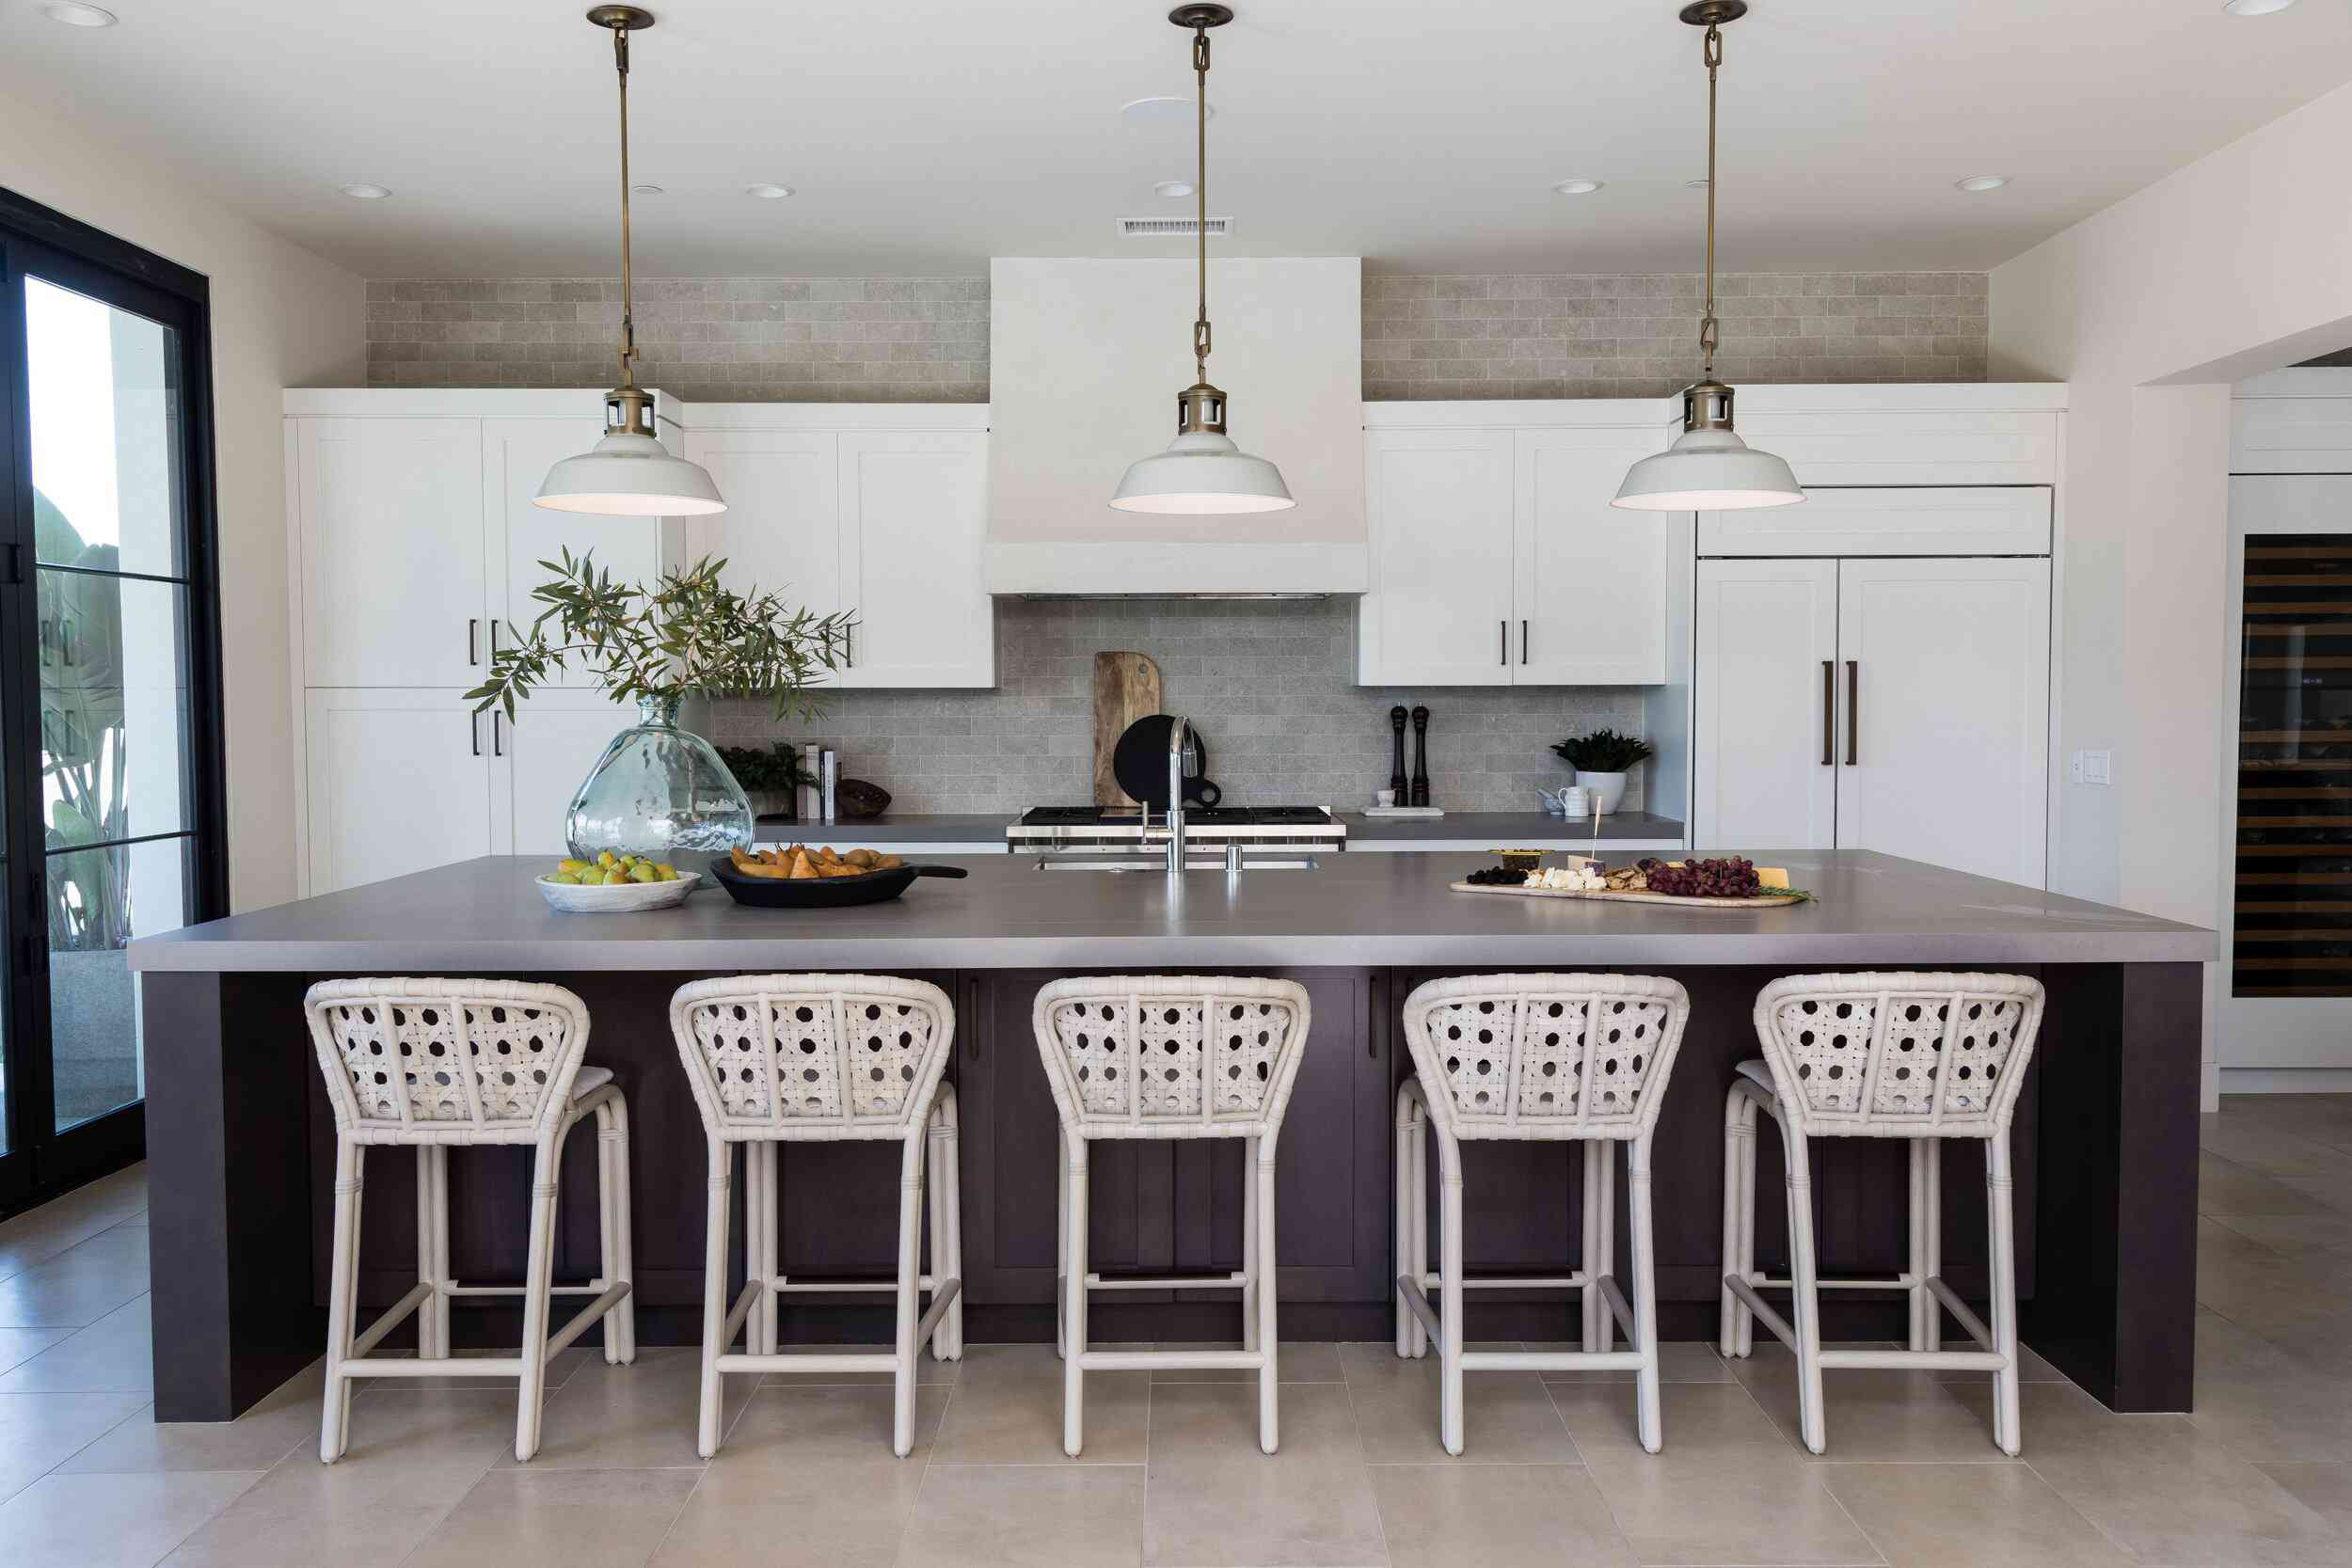 A kitchen with a gray backsplash, gray countertops, and charcoal cabinets